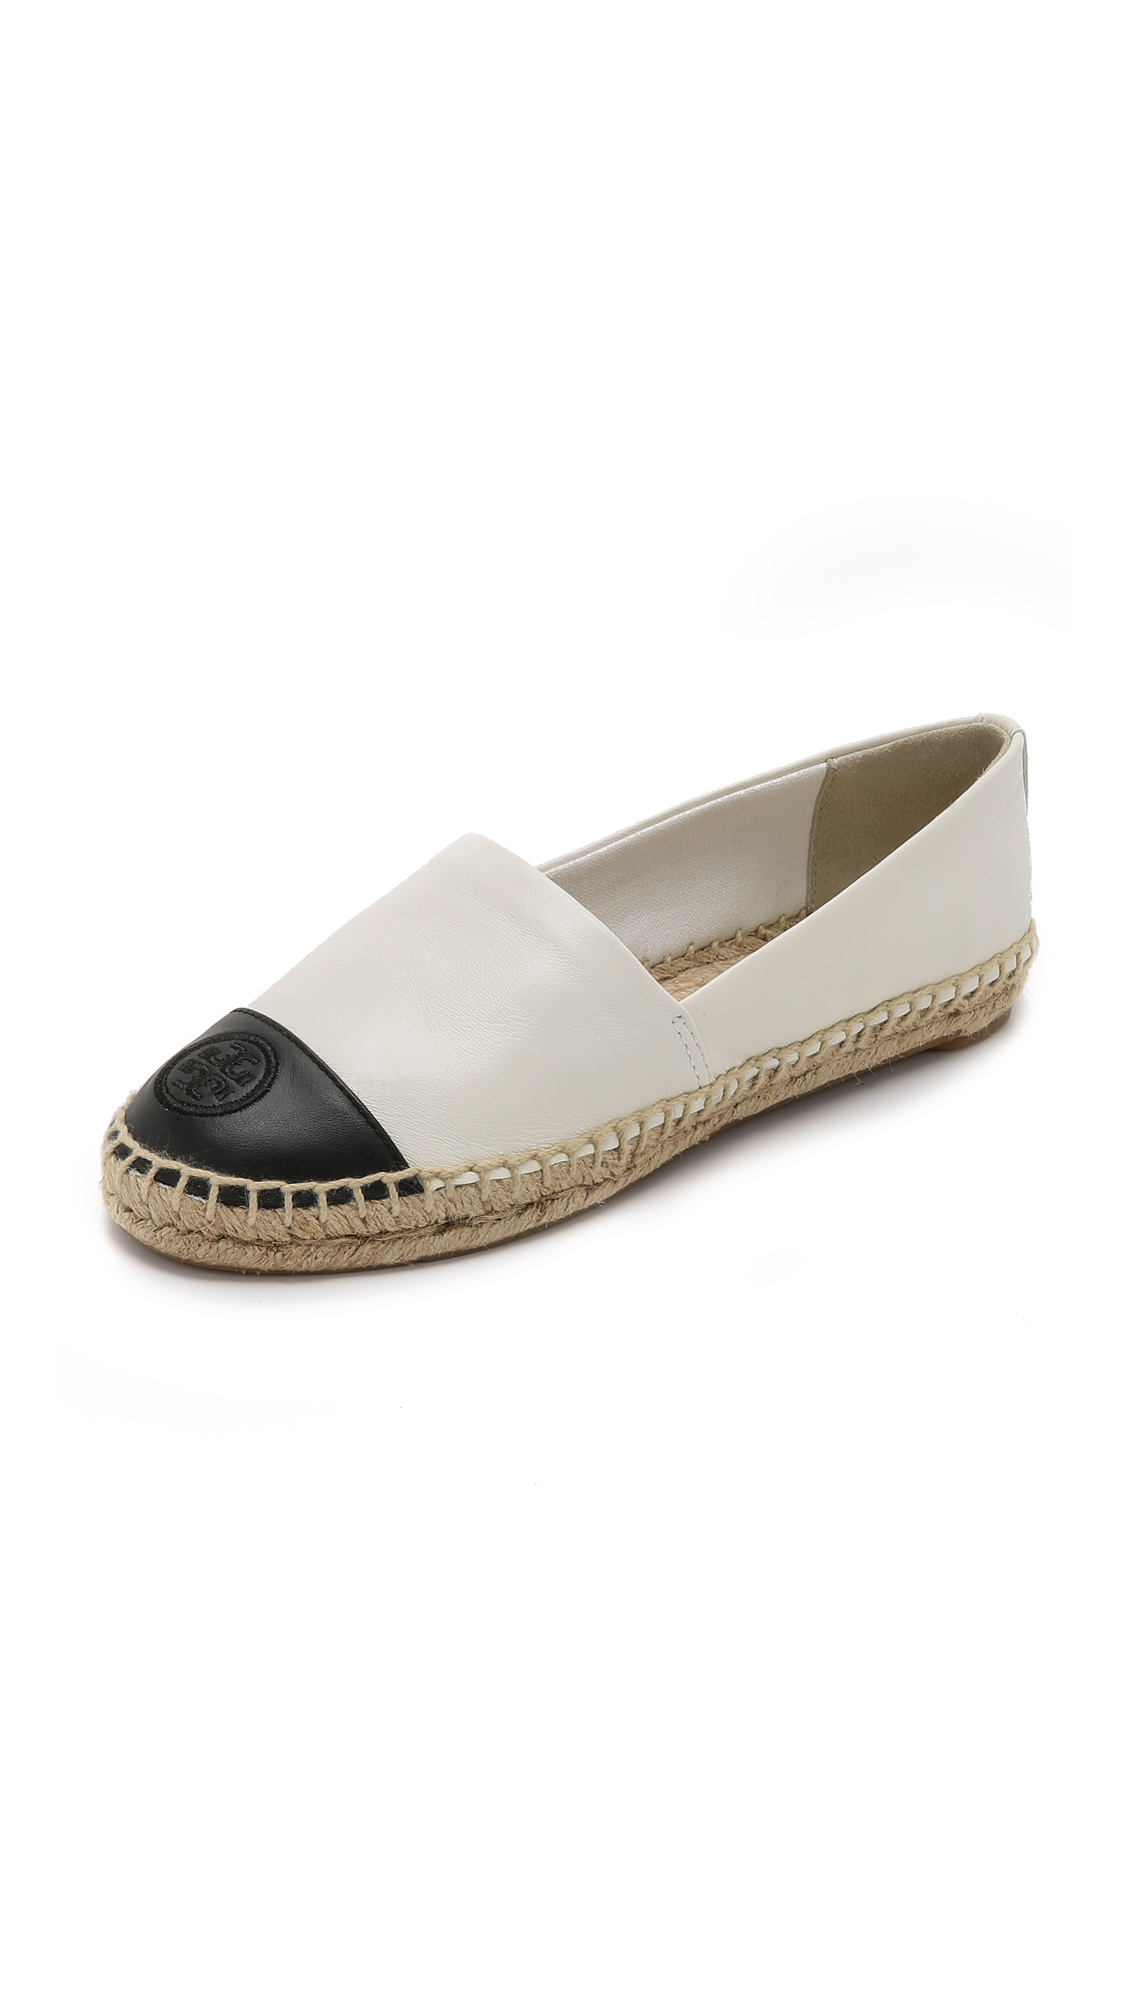 Colorblock Cap-Toe Espadrille Flat, Ivory/Black in White